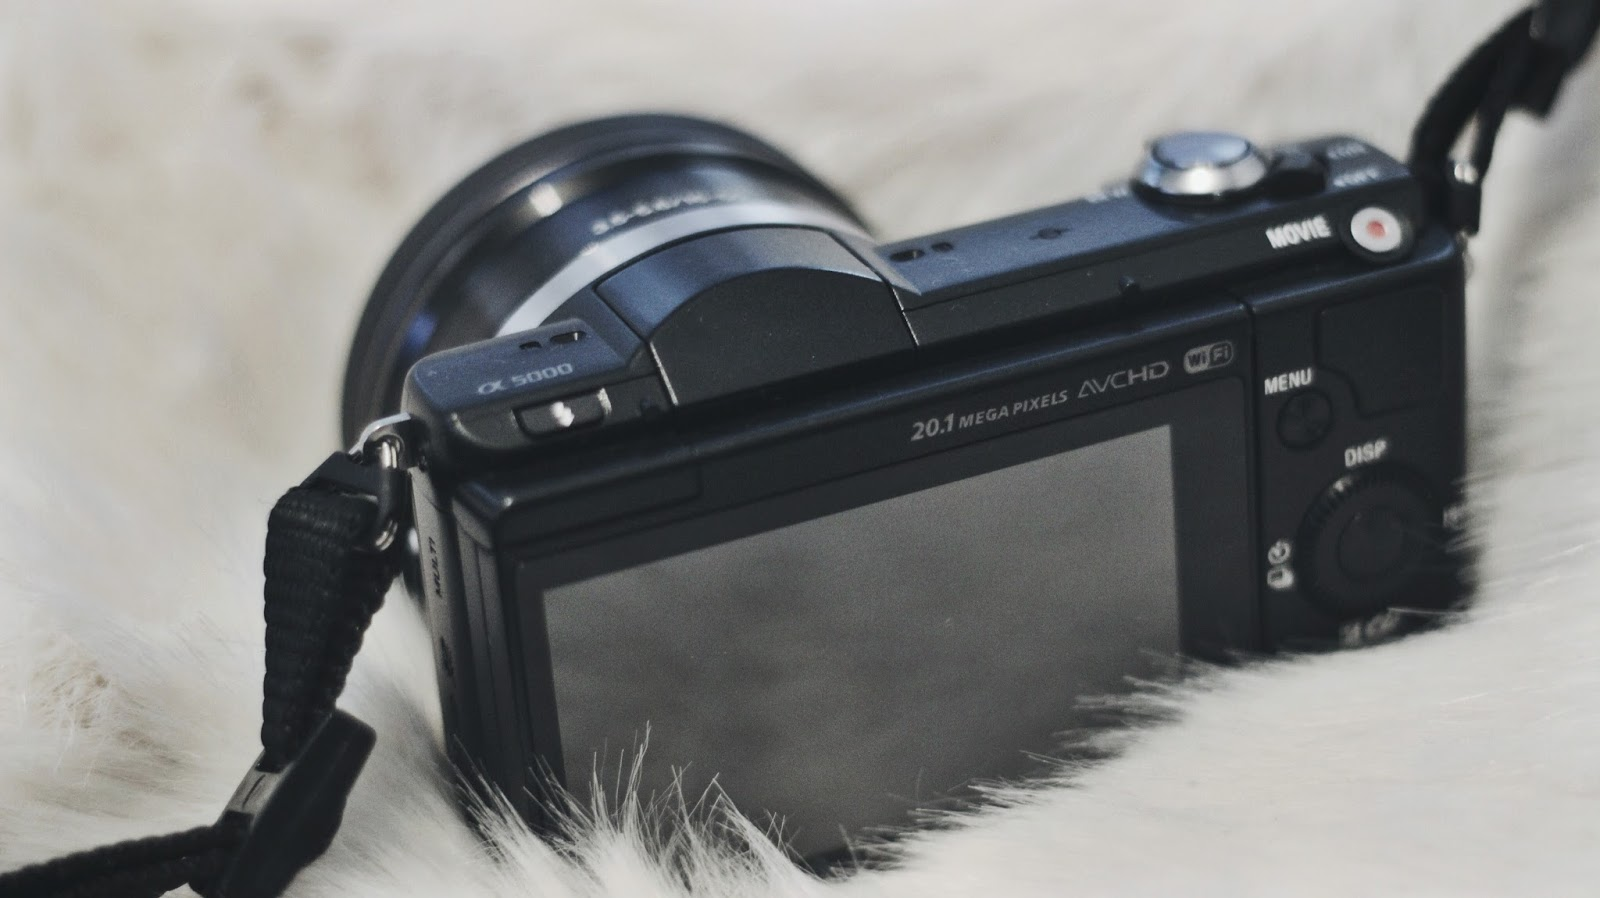 Sony alpha a5000 compact system camera review